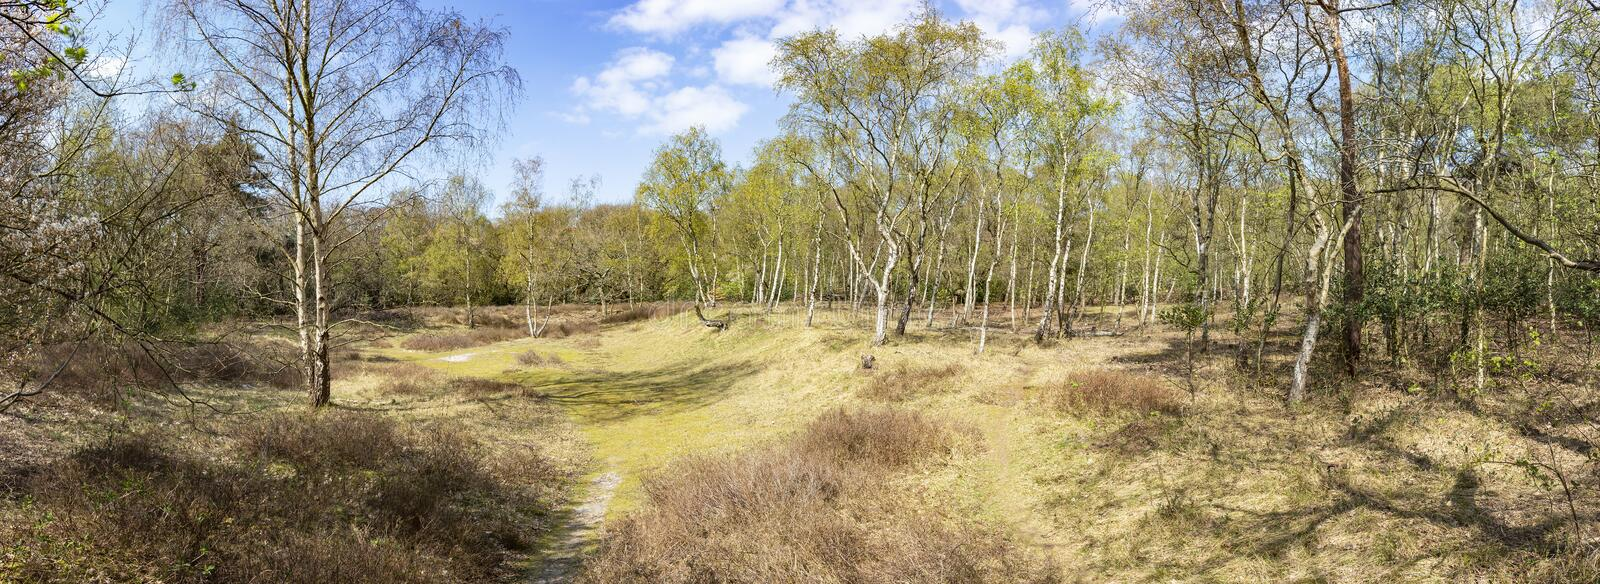 Panorama photo of an open place with many birch trees in the Hyacinth forest in spring colors in the park Ockenburg, the Hague, Ne stock photos